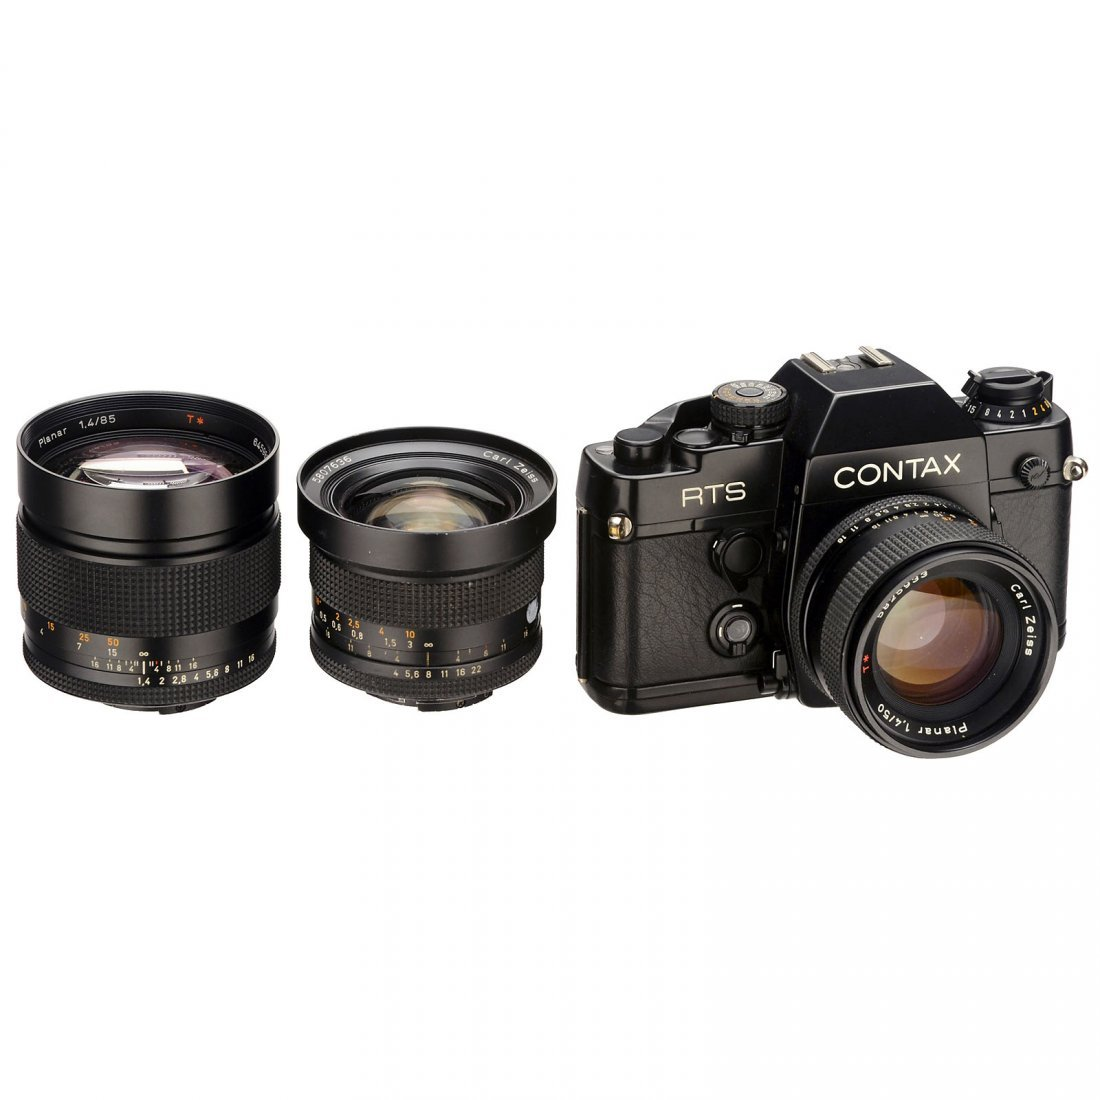 Contax RTS II with 3 Lenses